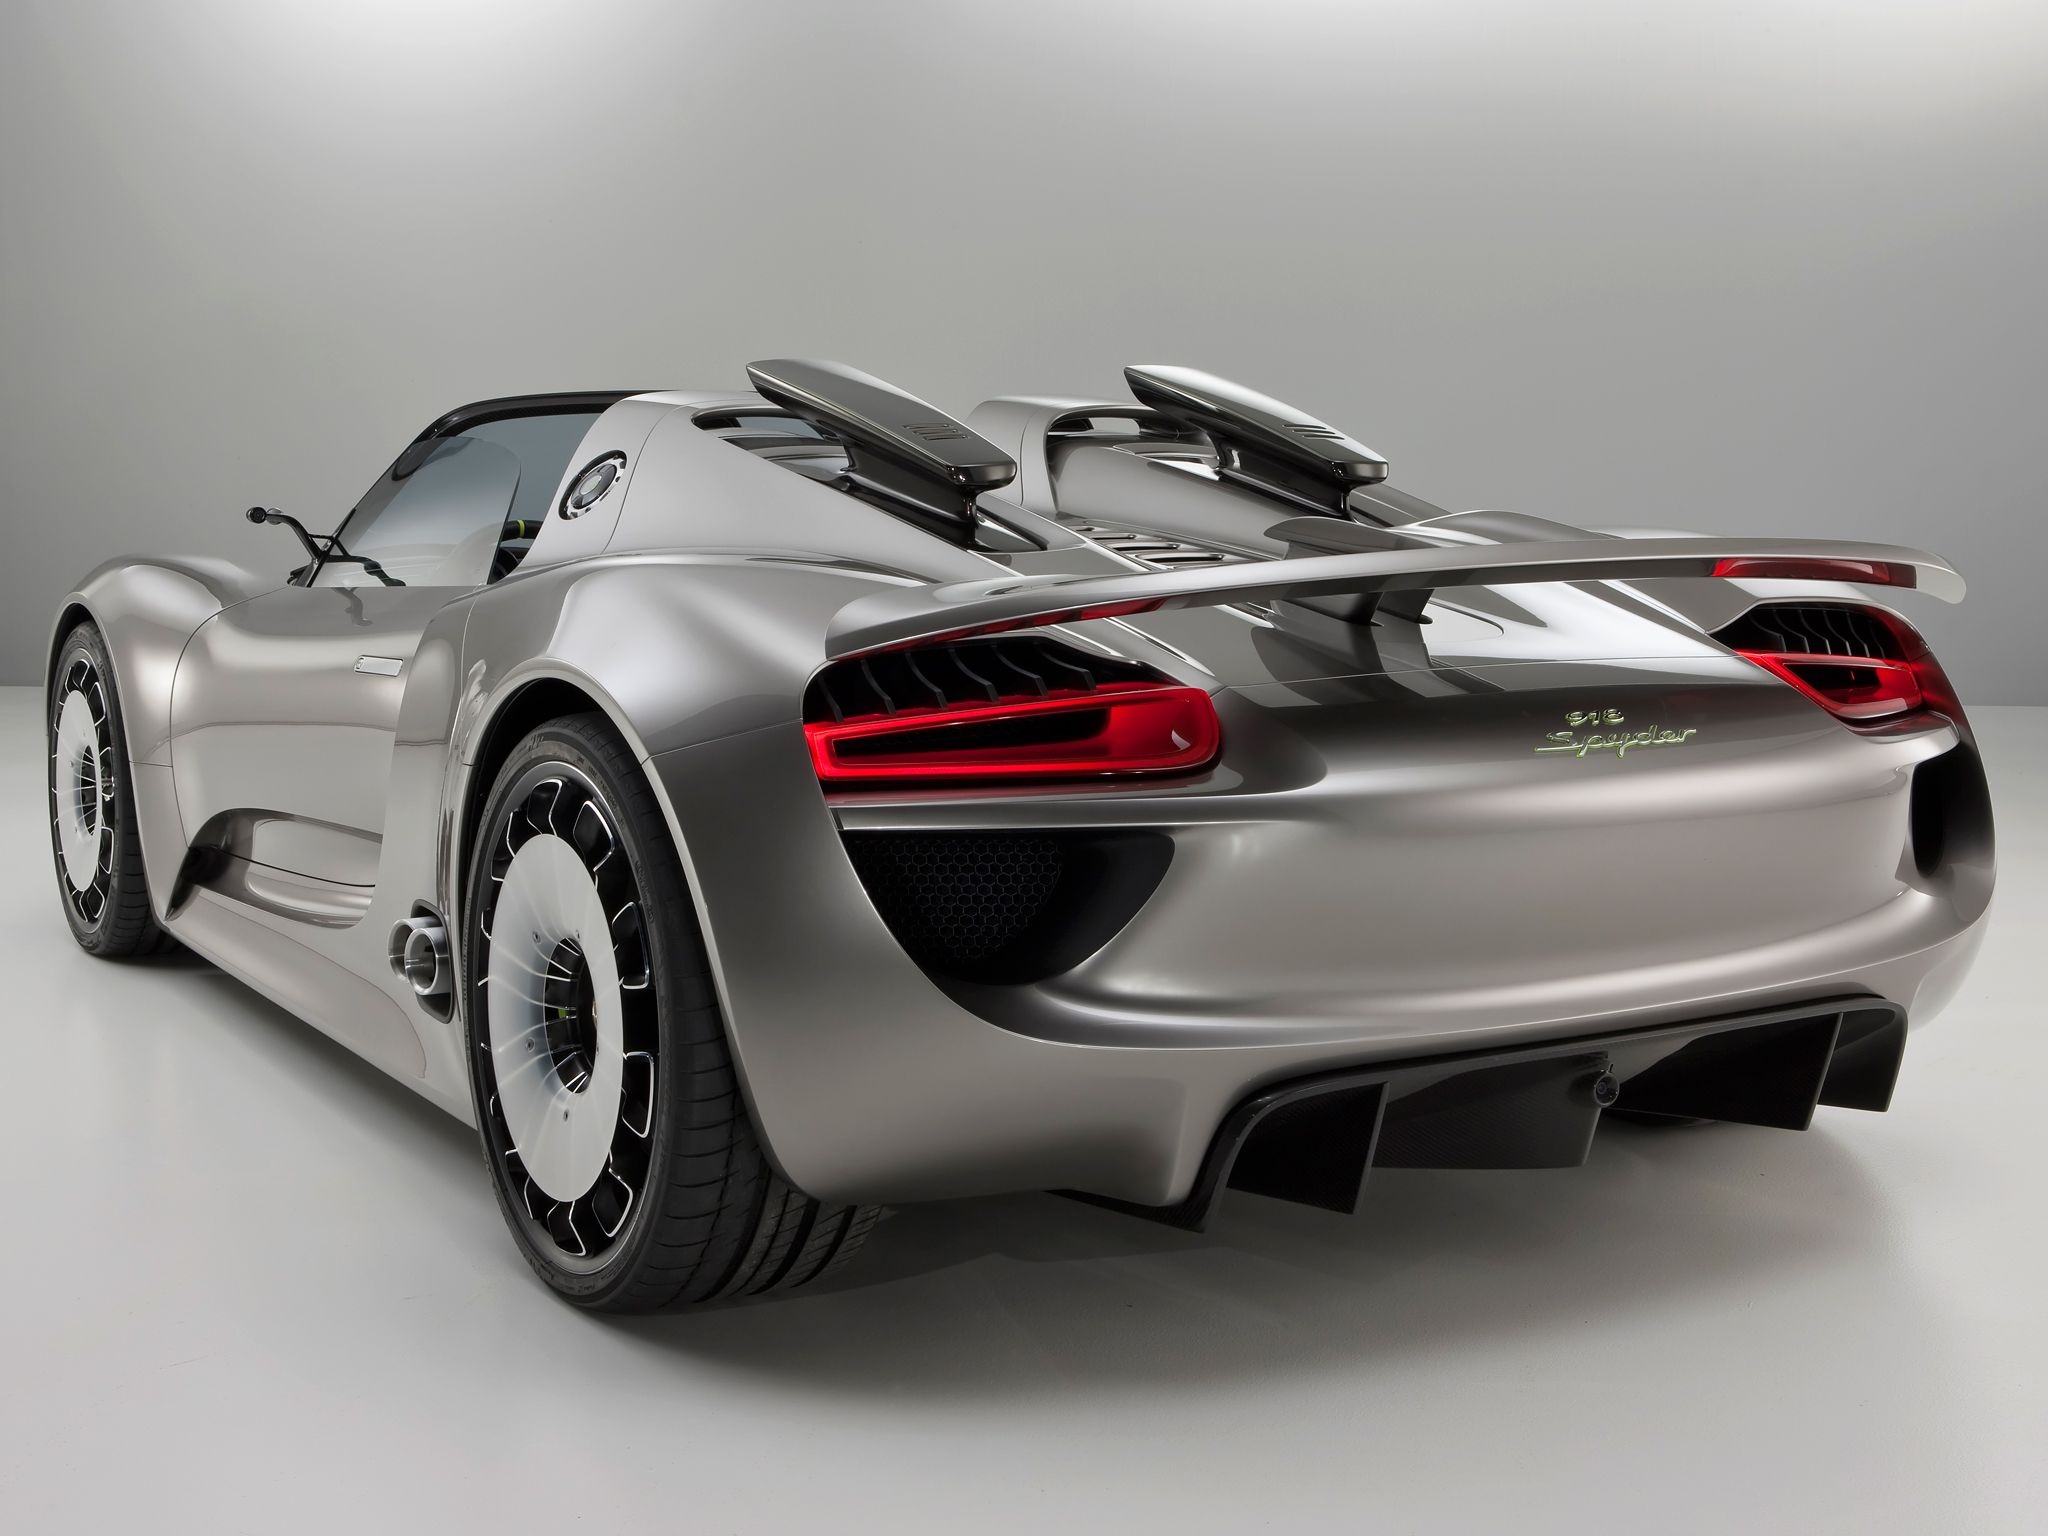 35fbae8aeb7275886cba99d16798a07a Fabulous How Much Does the Porsche 918 Spyder Concept Cost In Real Racing 3 Cars Trend